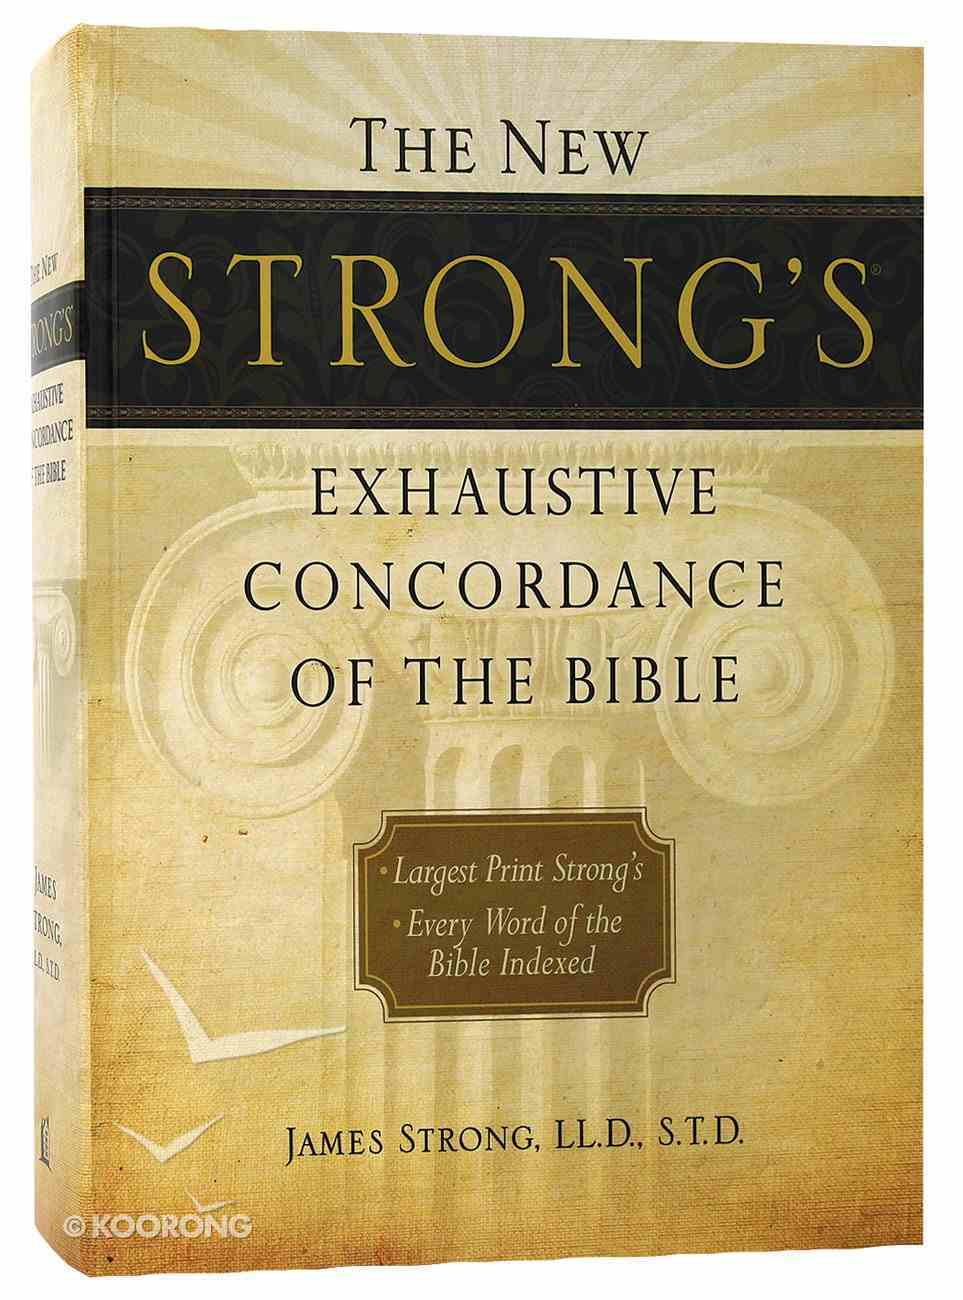 New Strong's Largest Print Exhaustive Concordance of the Bible (Kjv Based) Hardback